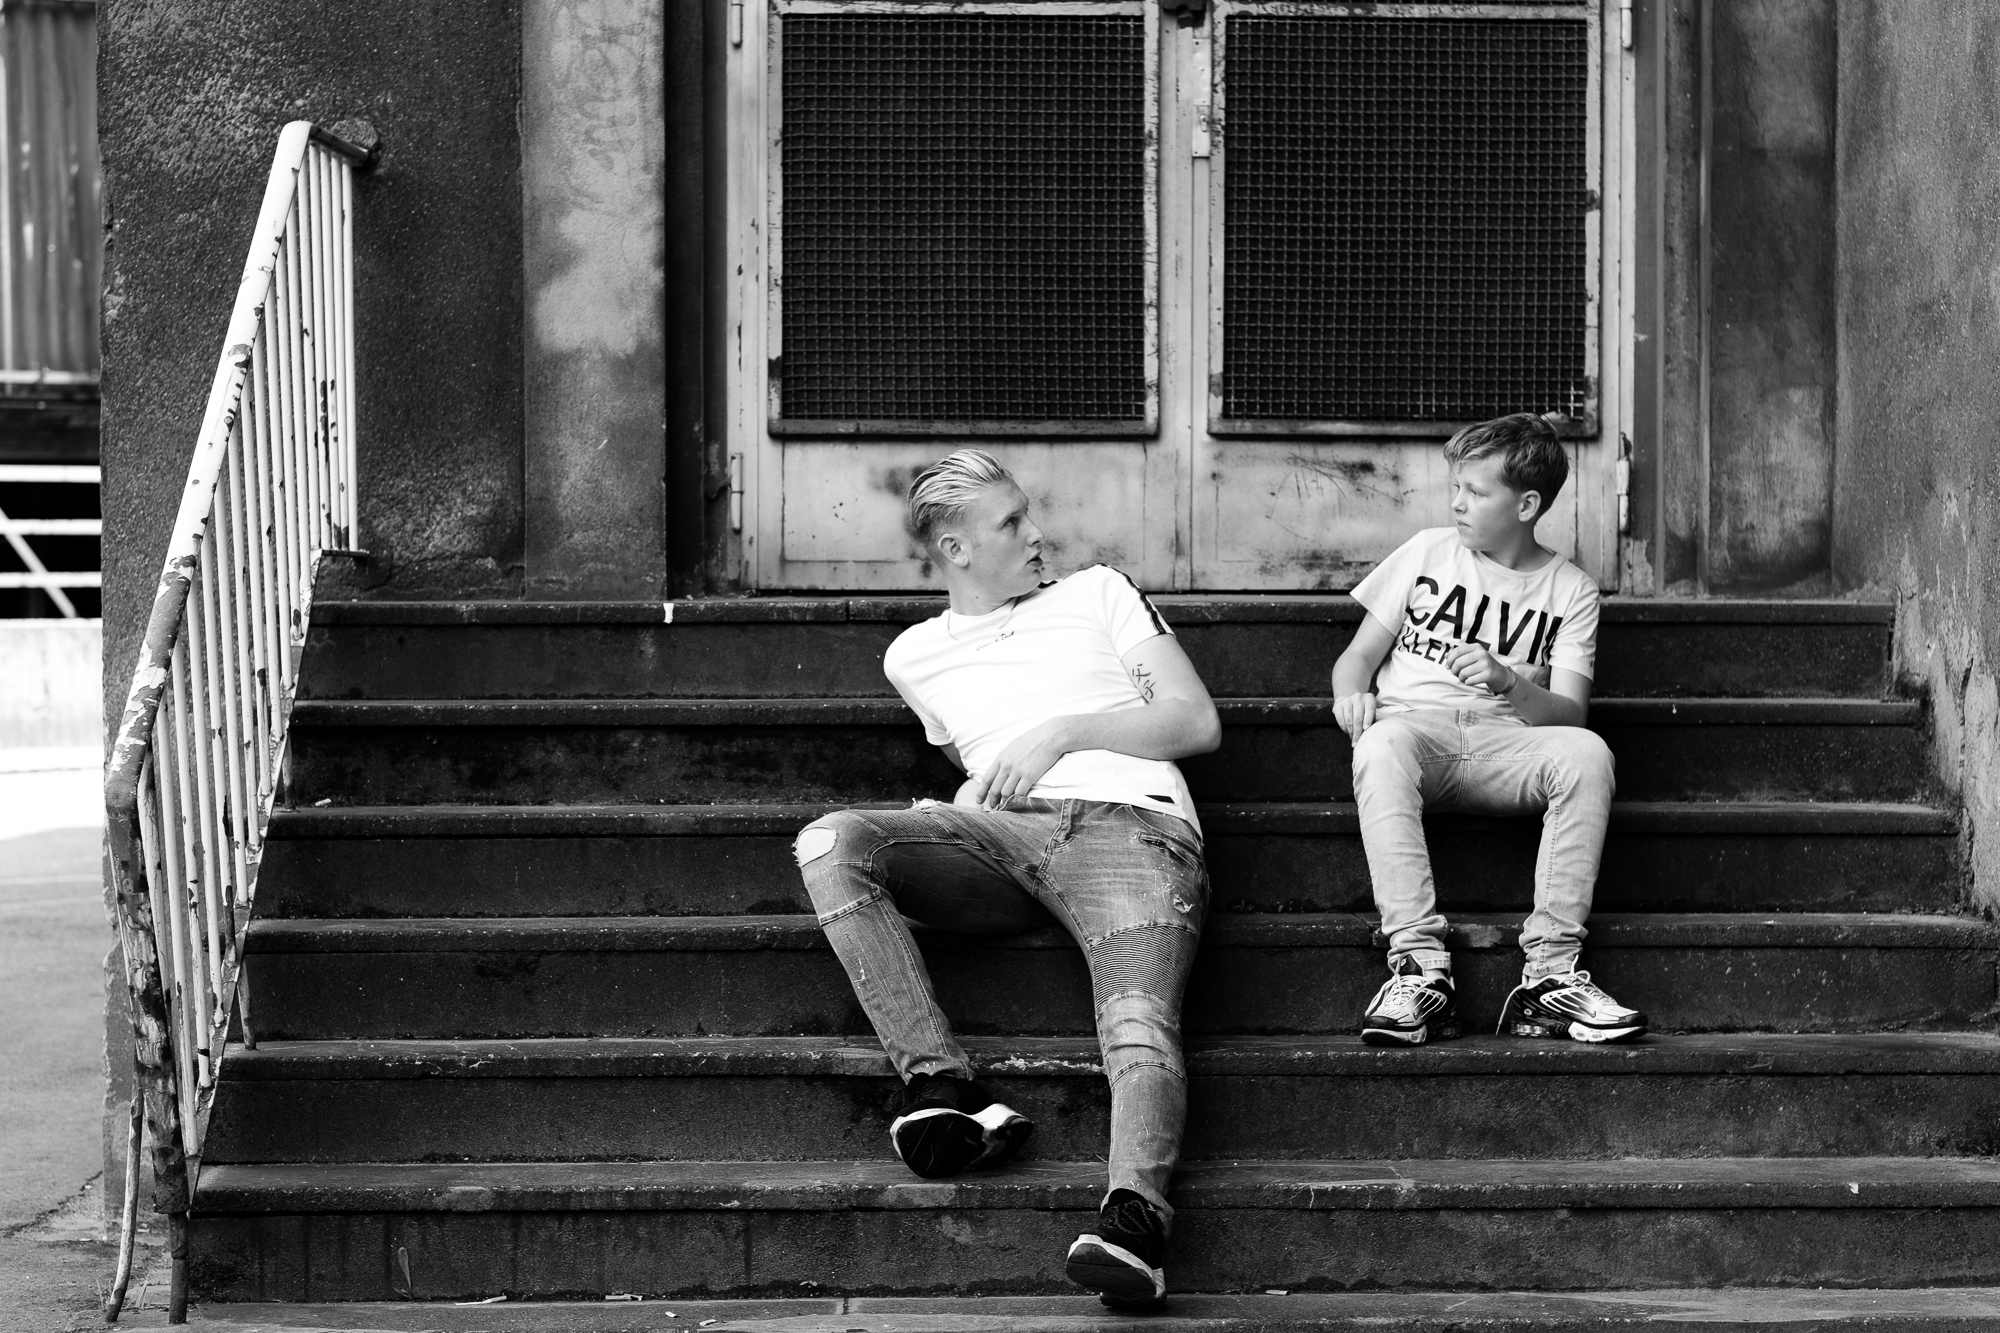 two boys looking at each other on stairs